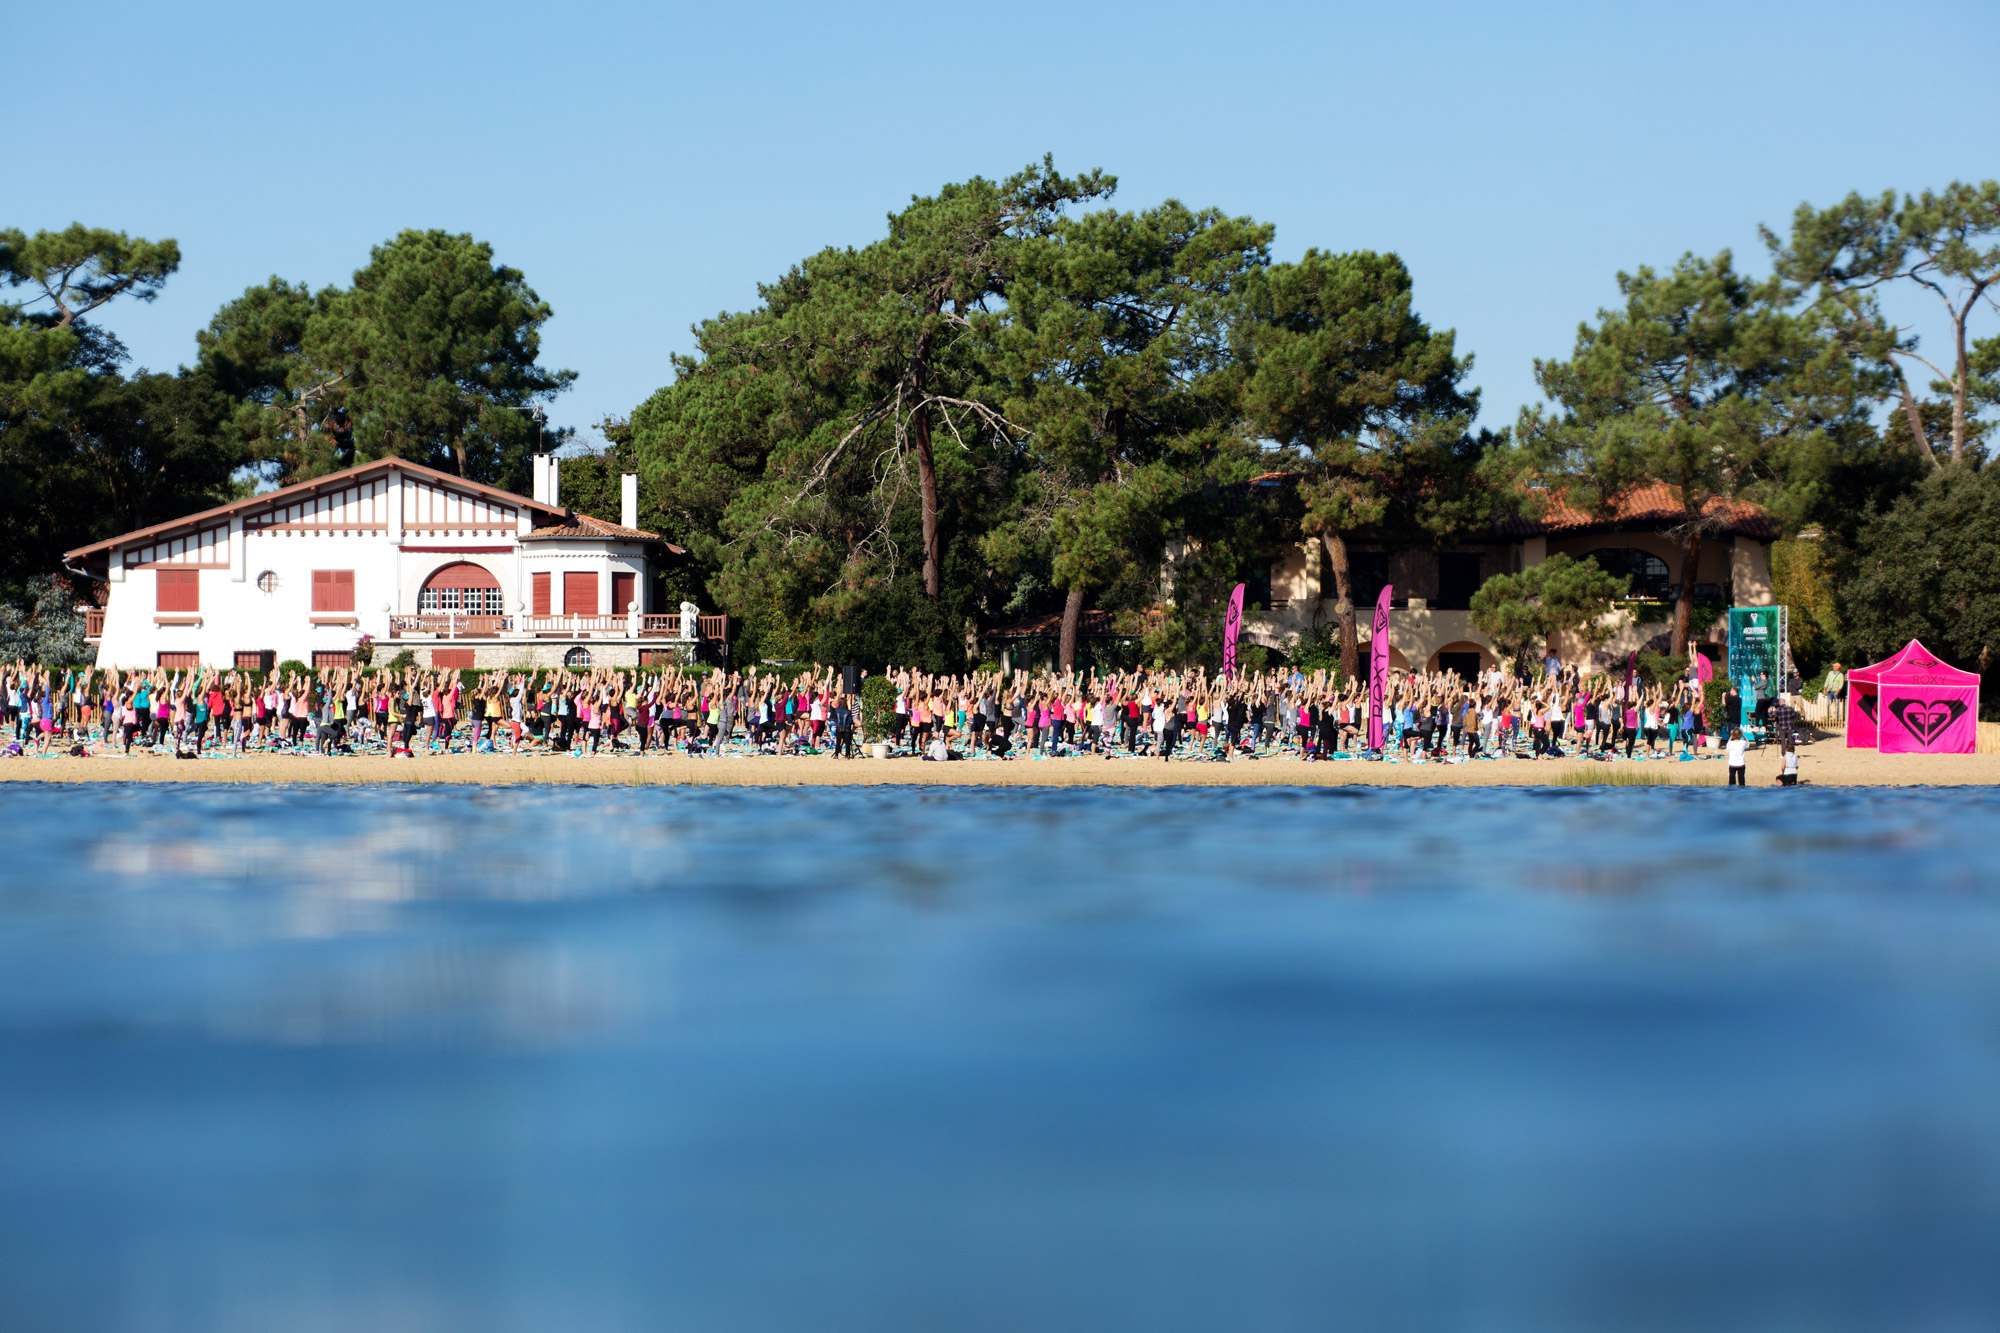 Thousands of girls take up the #ROXYfitness Challenge in Hossegor, France